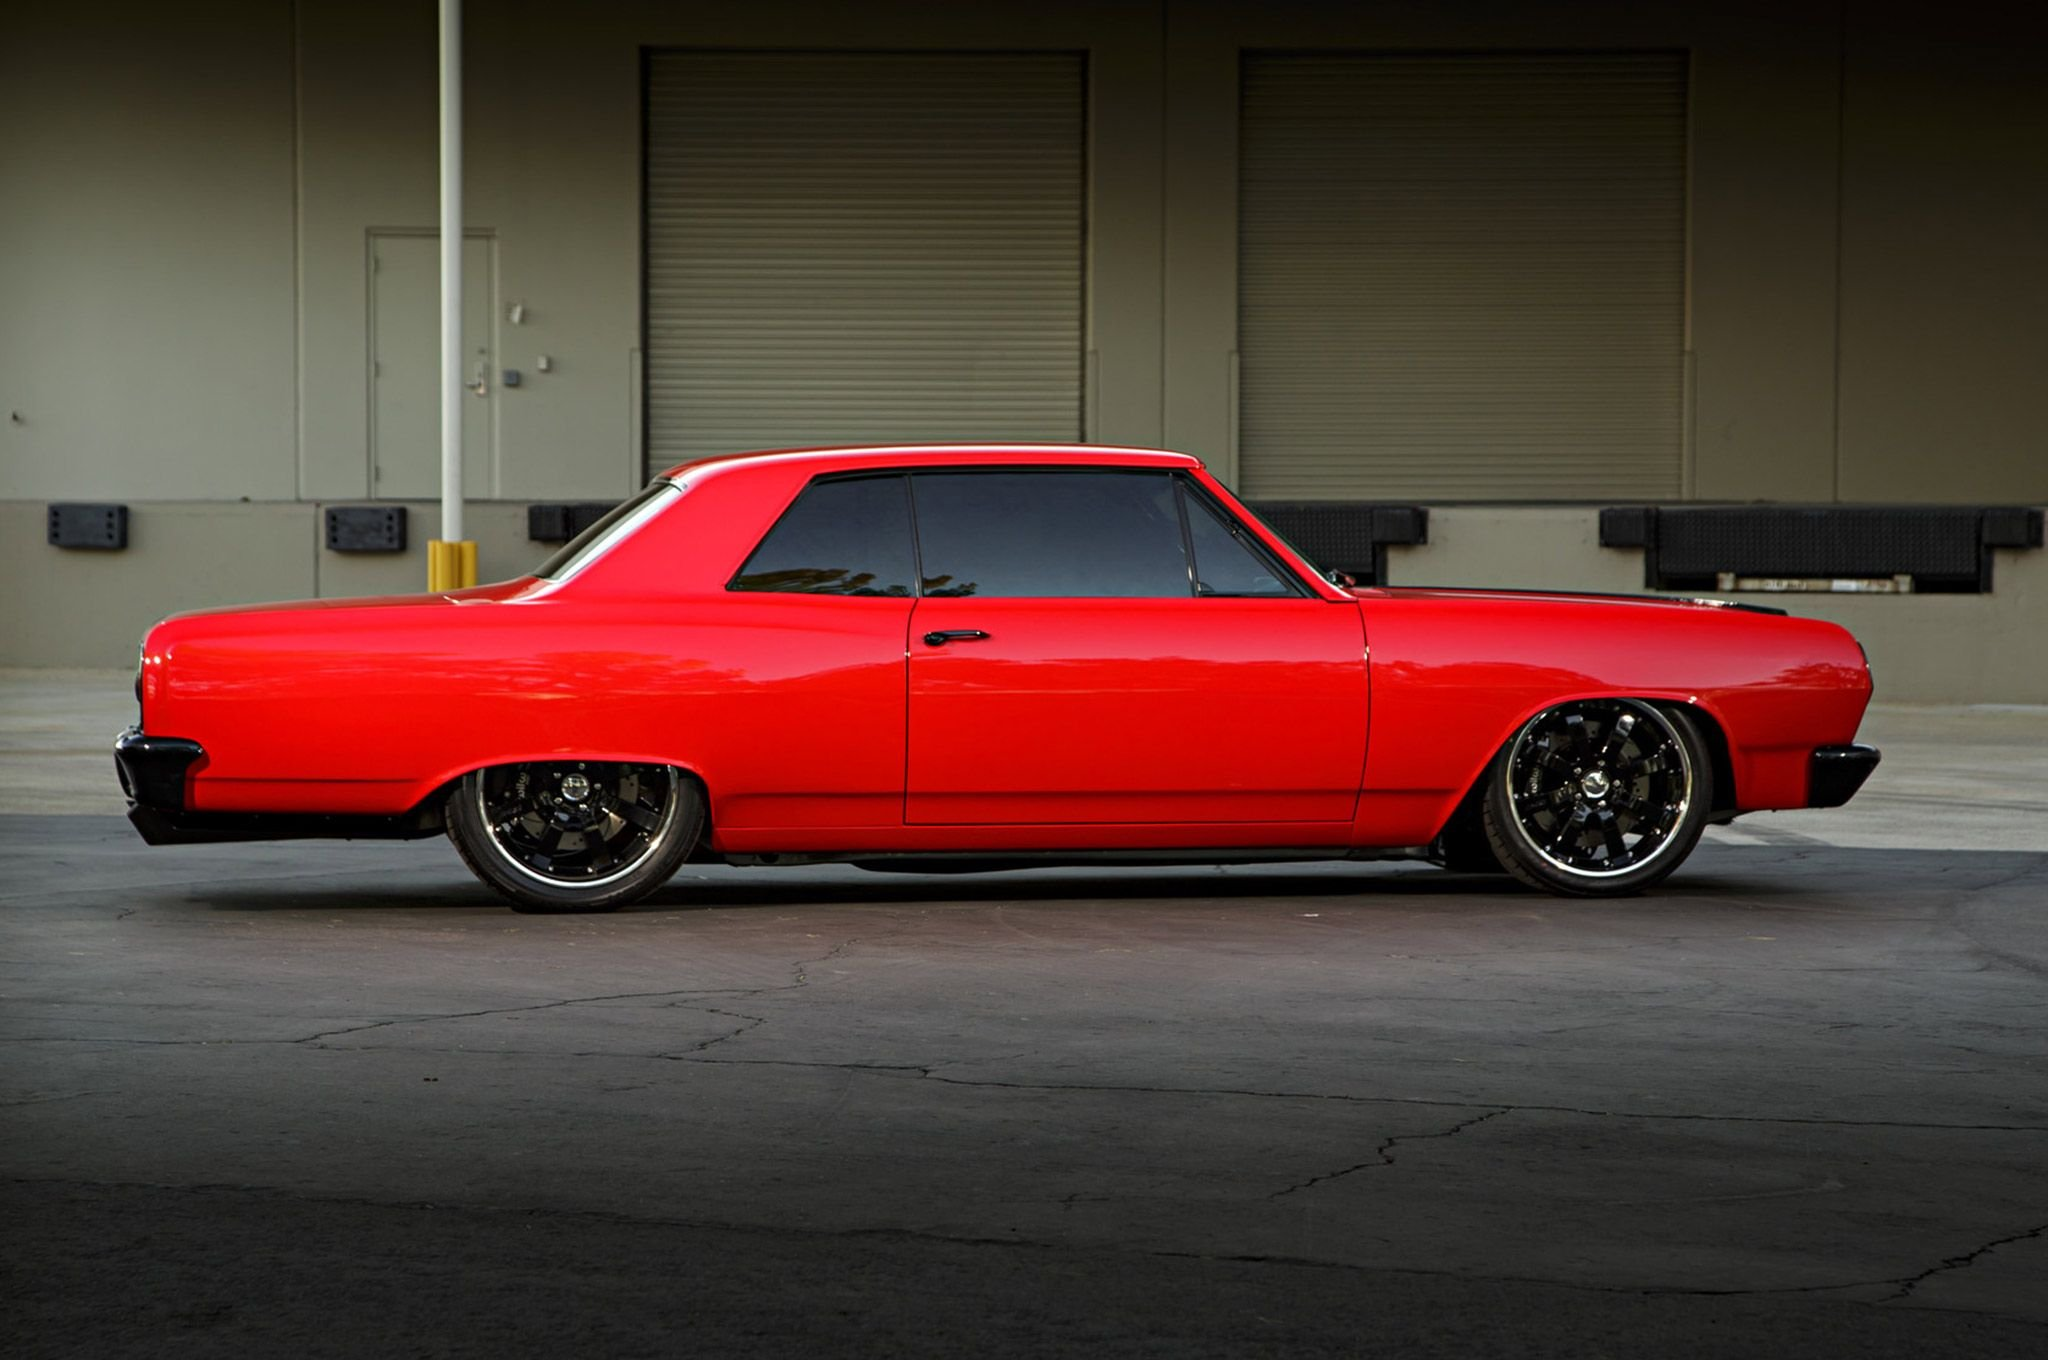 1965 Chevrolet Chevelle red classic cars modified wallpaper ...